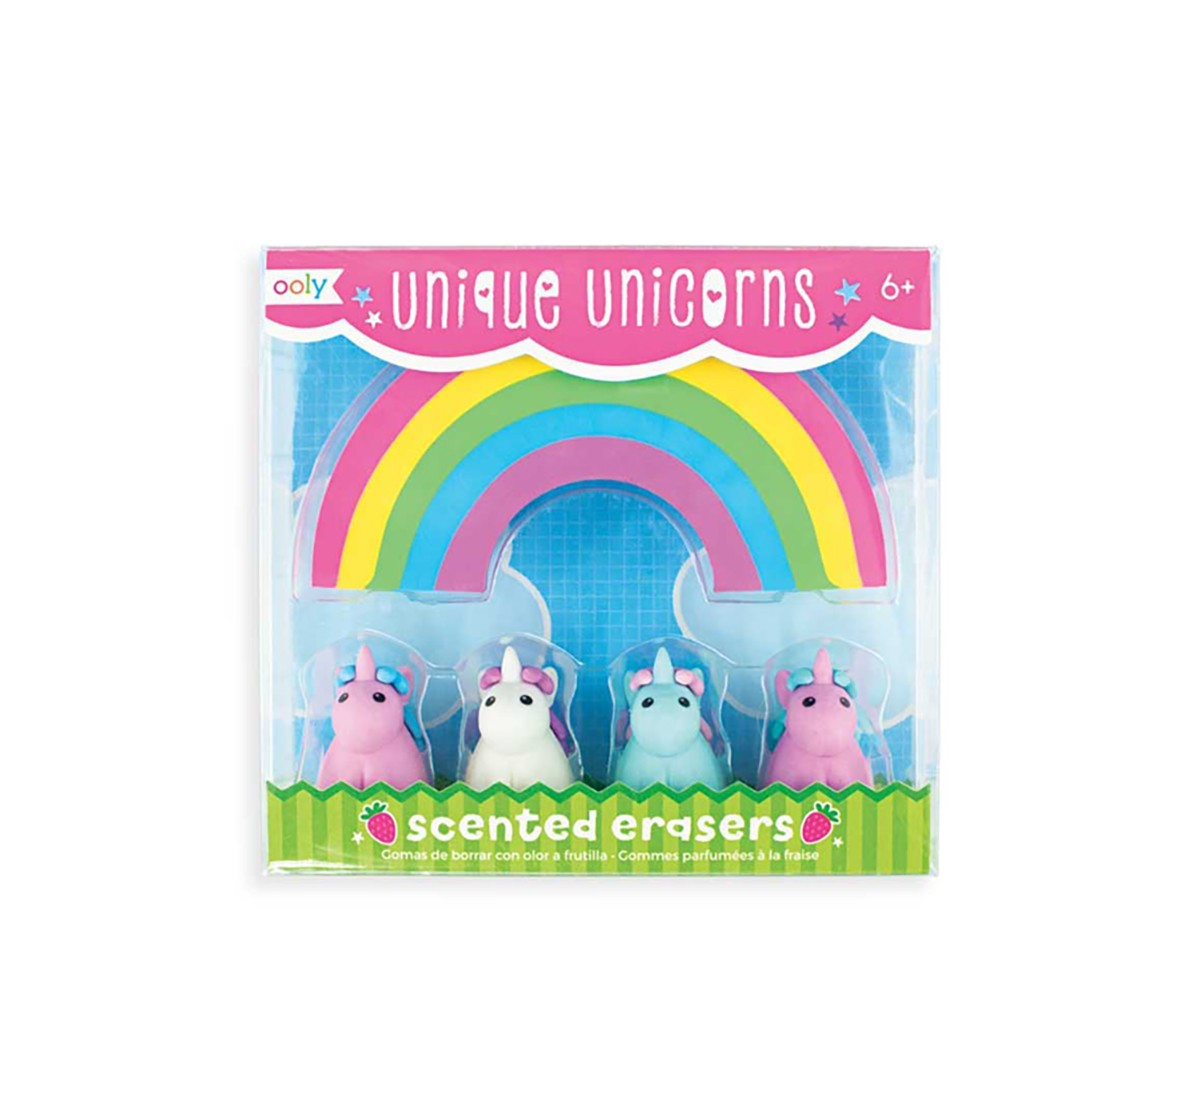 Ooly Unique Unicorns Scented Erasers - 4Pcs School Stationery for Kids age 6Y+